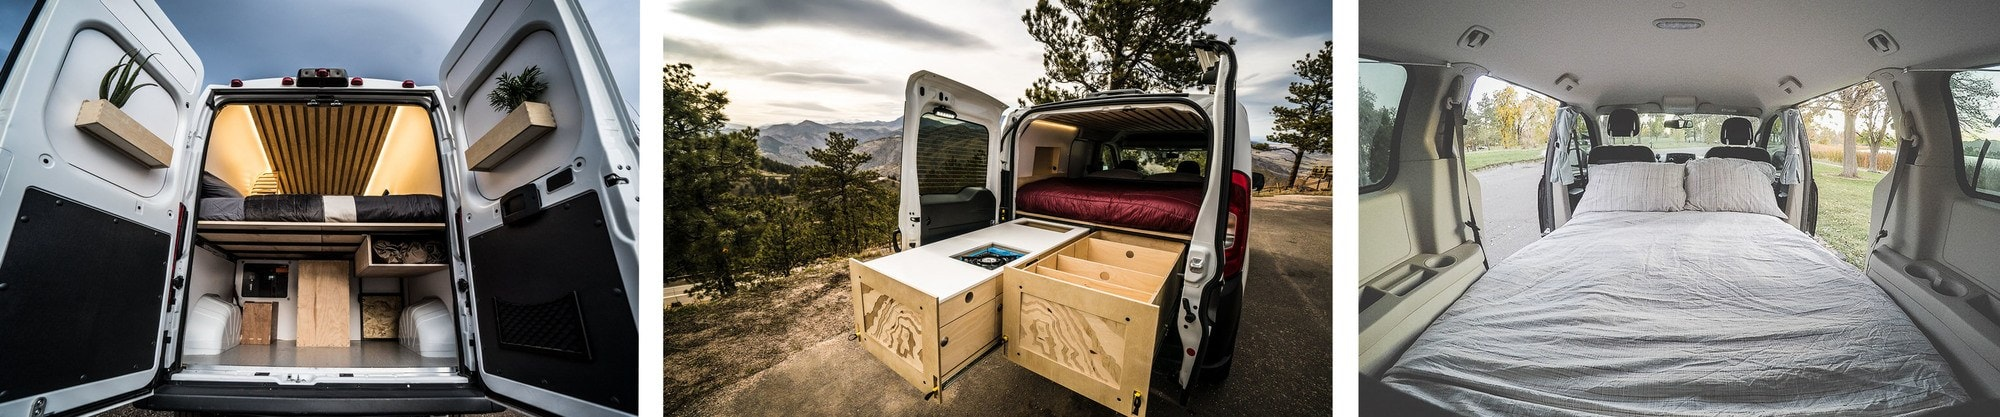 Native Camper Vans // Rent an adventure mobile from one of these camper van rental companies and choose from Sprinters, Vanagons, Ford Transits, Sportsmobiles & more!